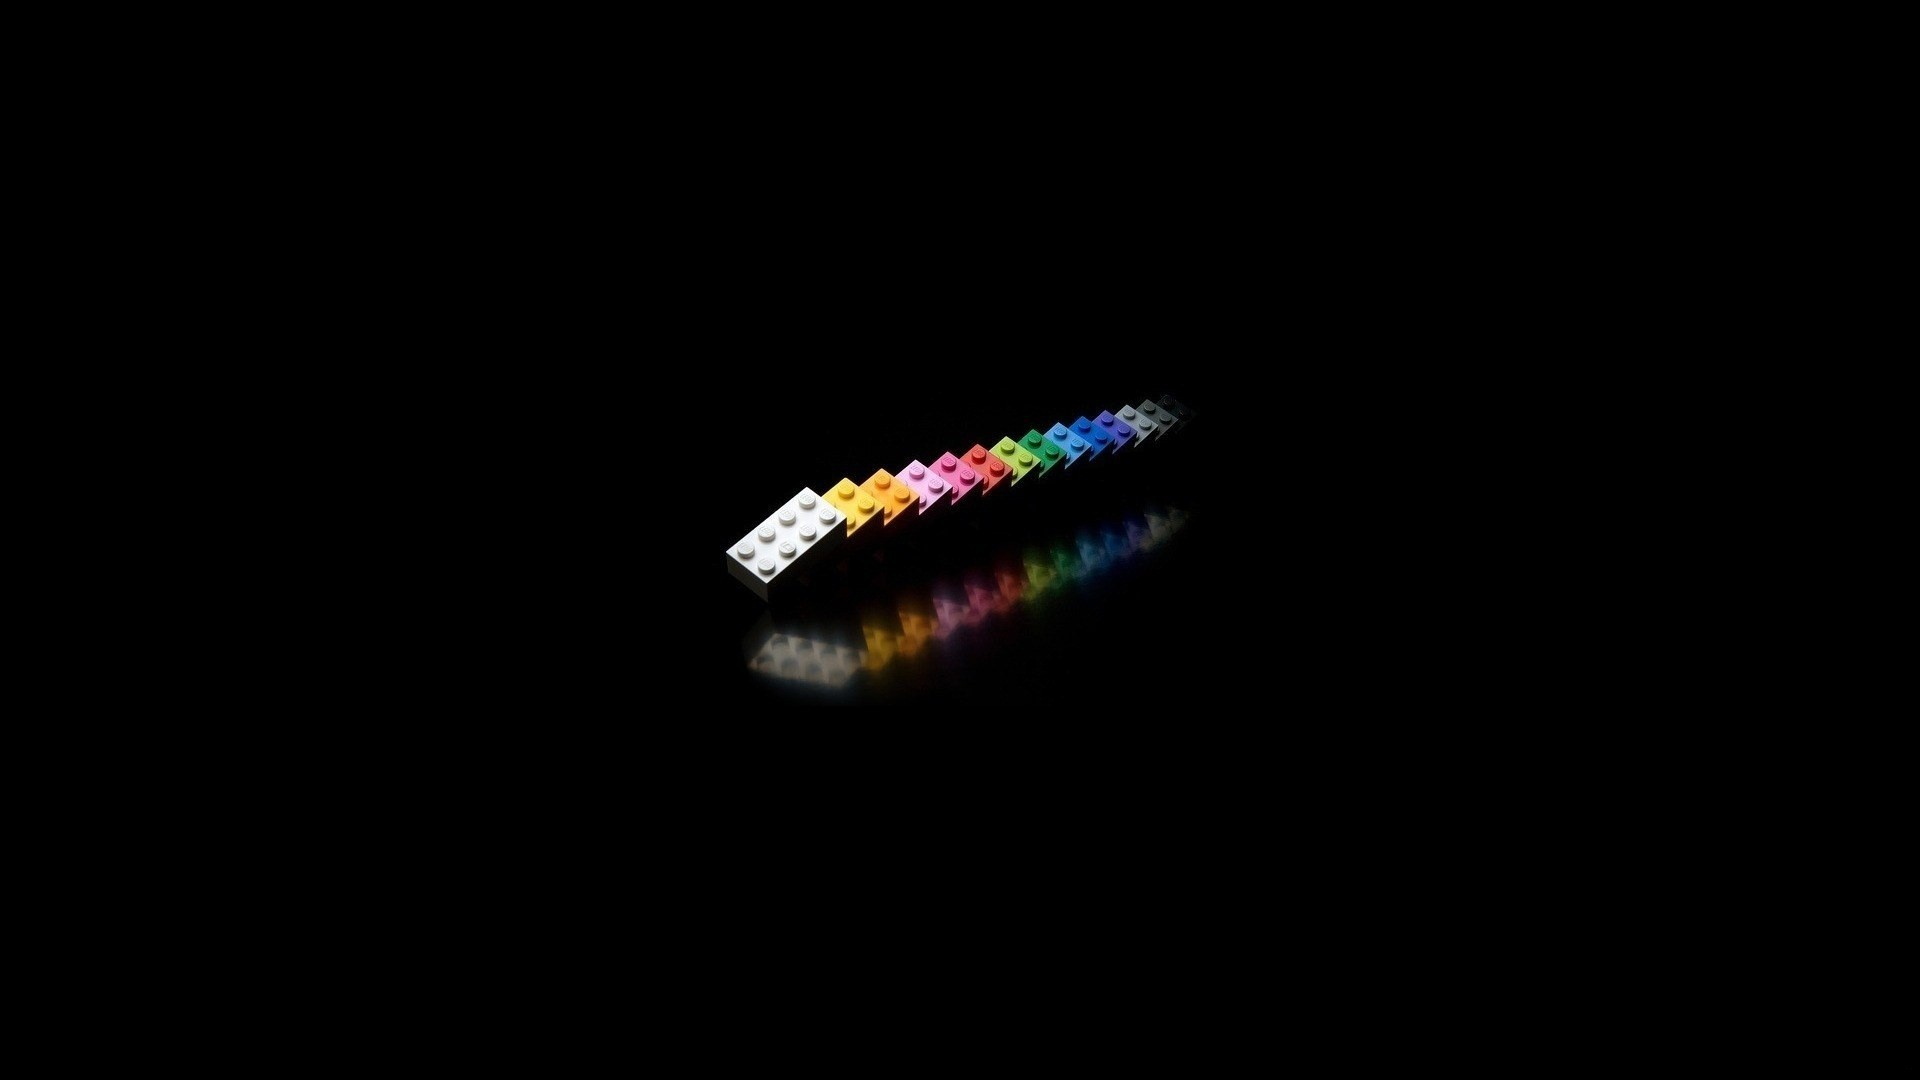 Lego Minimalistic Colorful